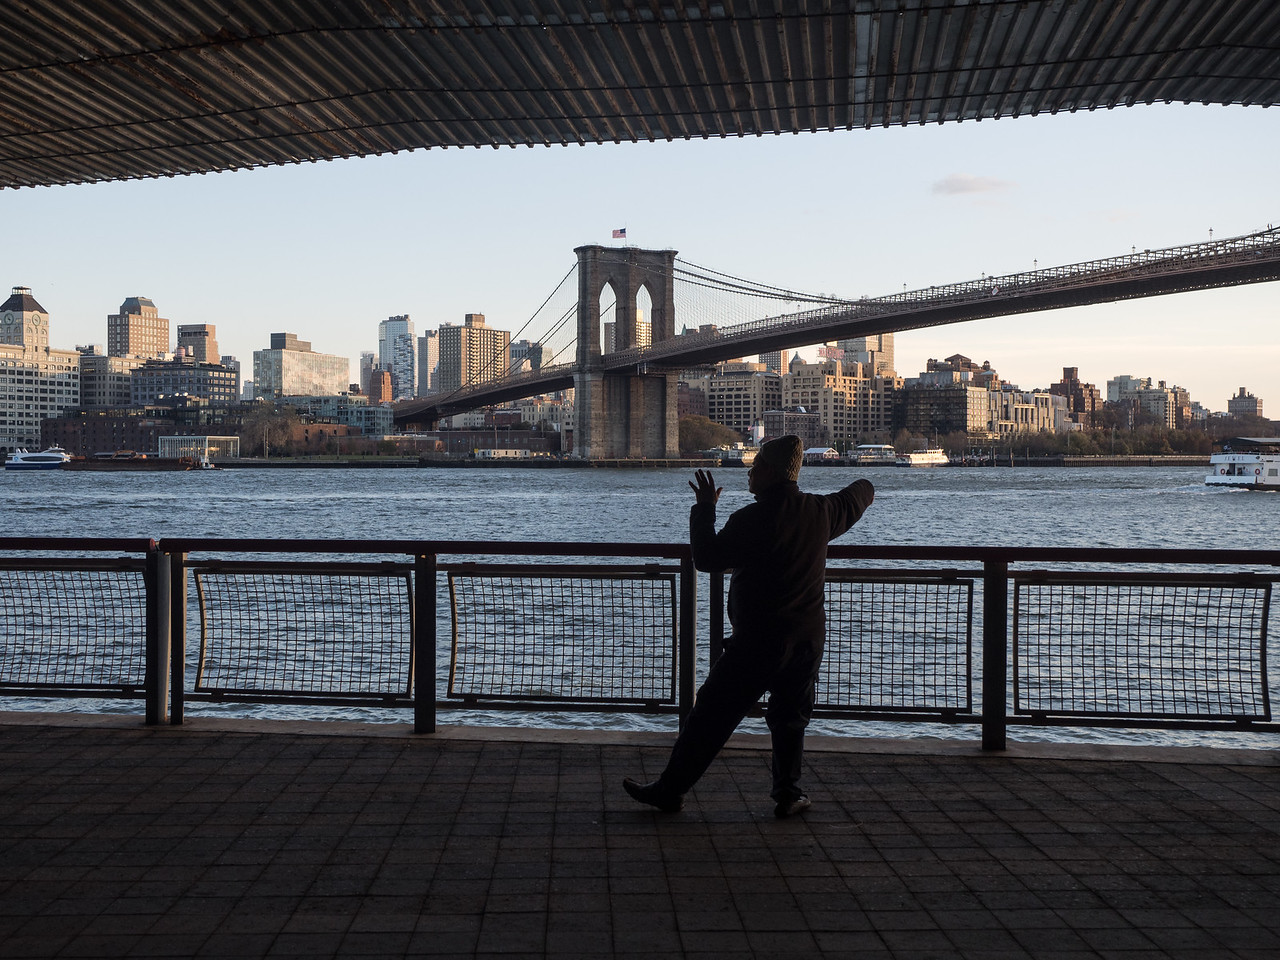 This Chinese man was practising his Tai Chi under a road bridge, looking across at Brooklyn.